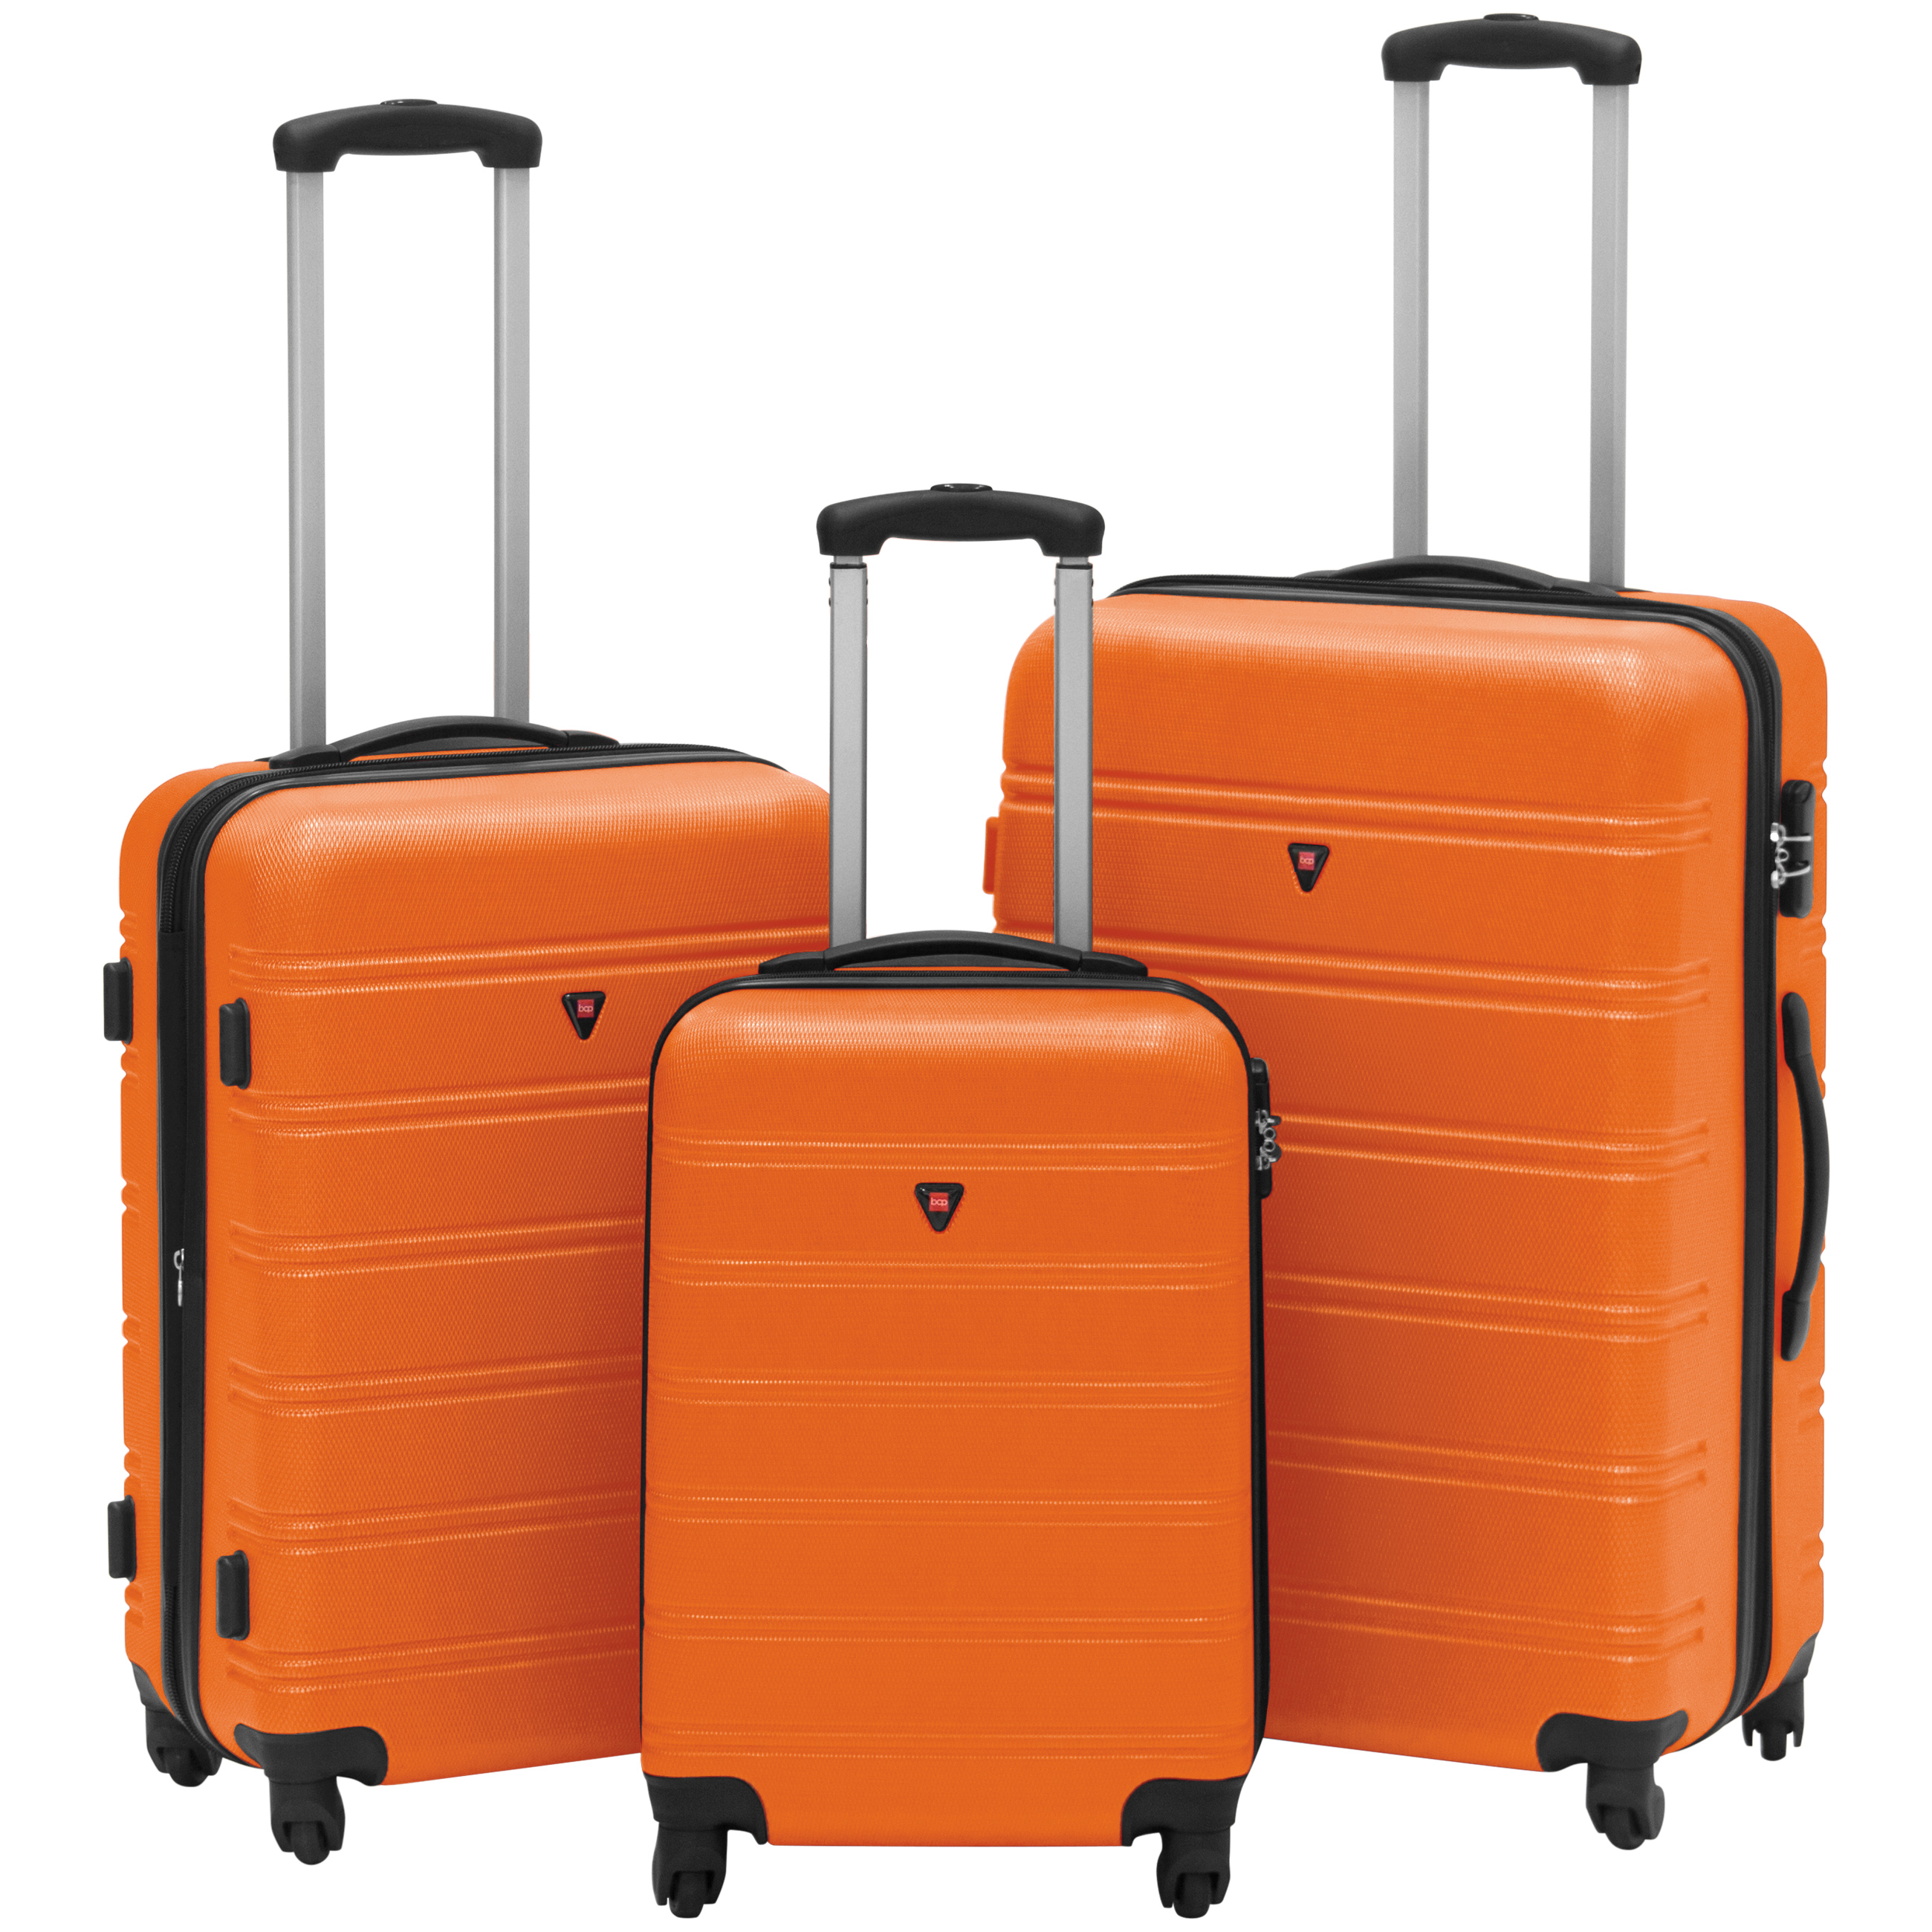 Best Choice Products Hardshell 3 Piece Expandable Spinner Luggage Set - Orange